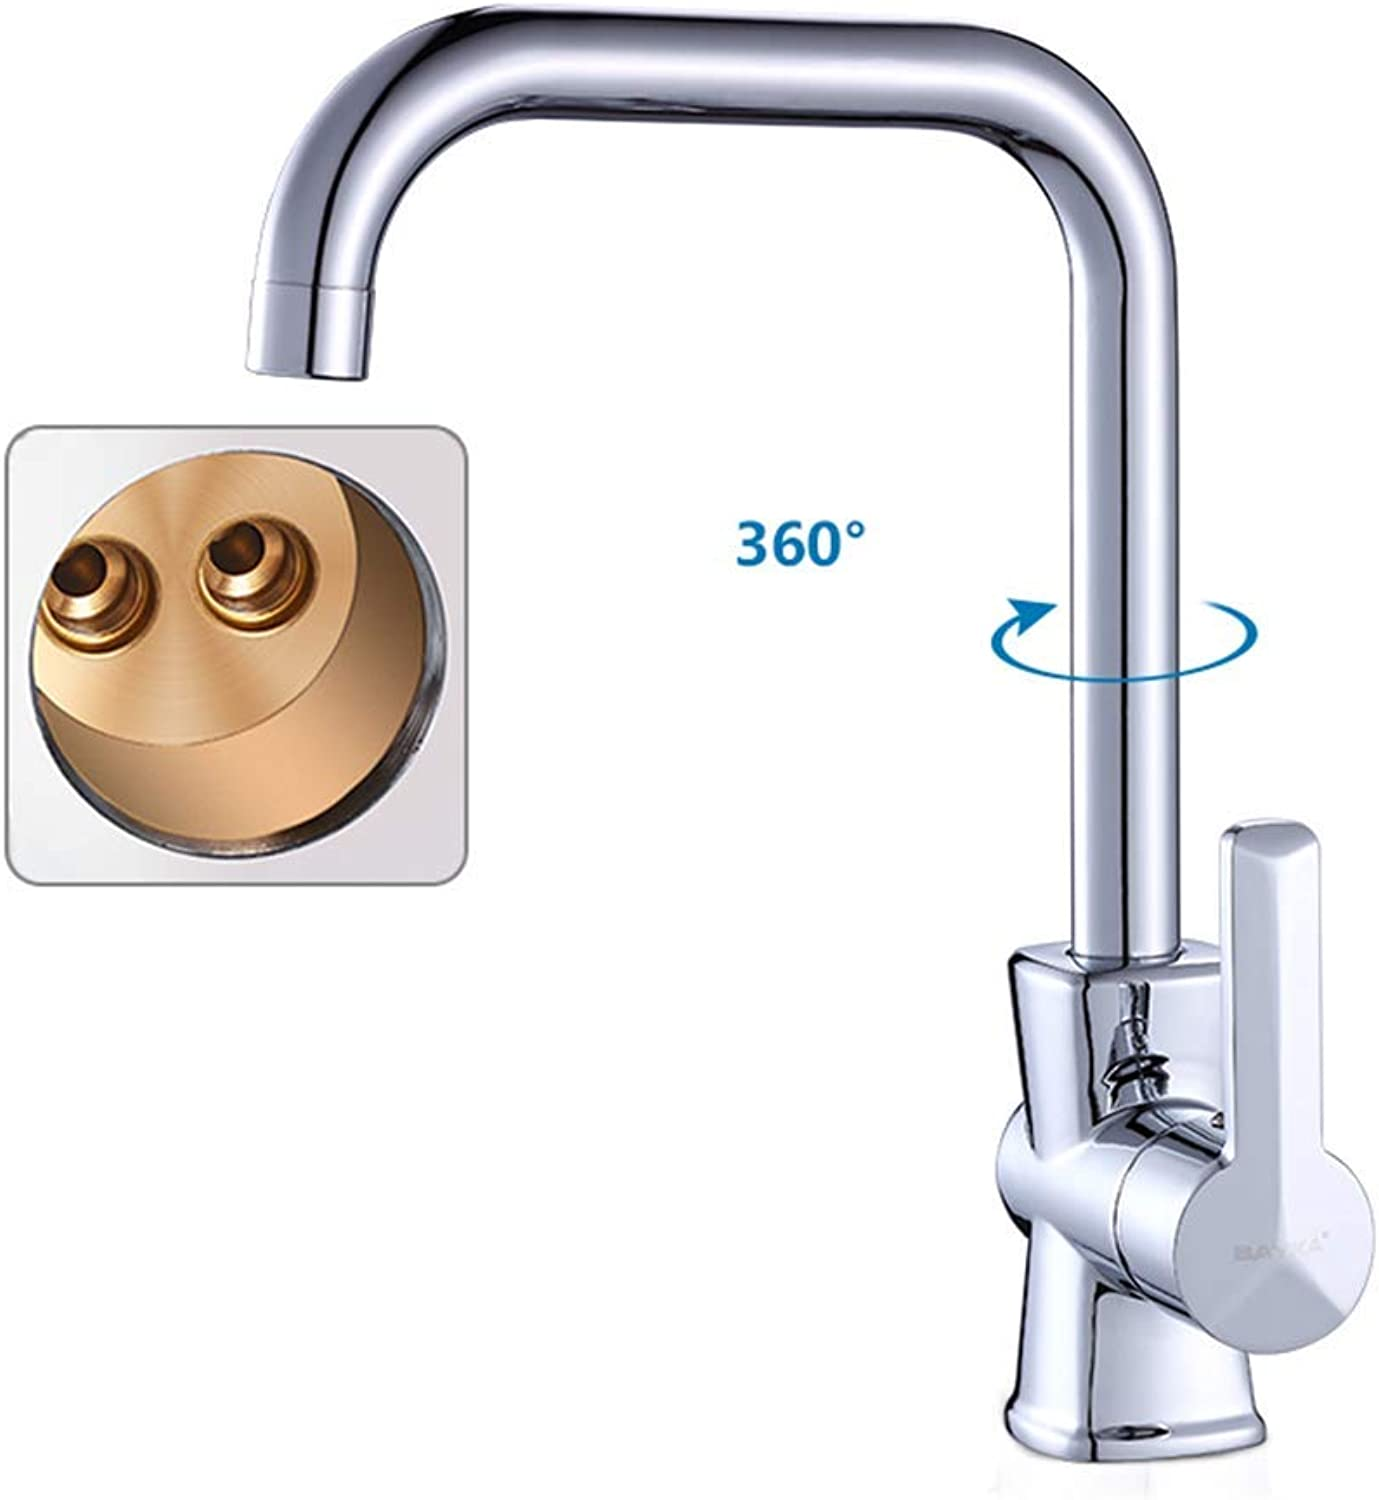 Kitchen Faucet Sink redating Single Hole Single Rod Sink Hot And Cold Water Faucet Copper Body Kitchen Faucet